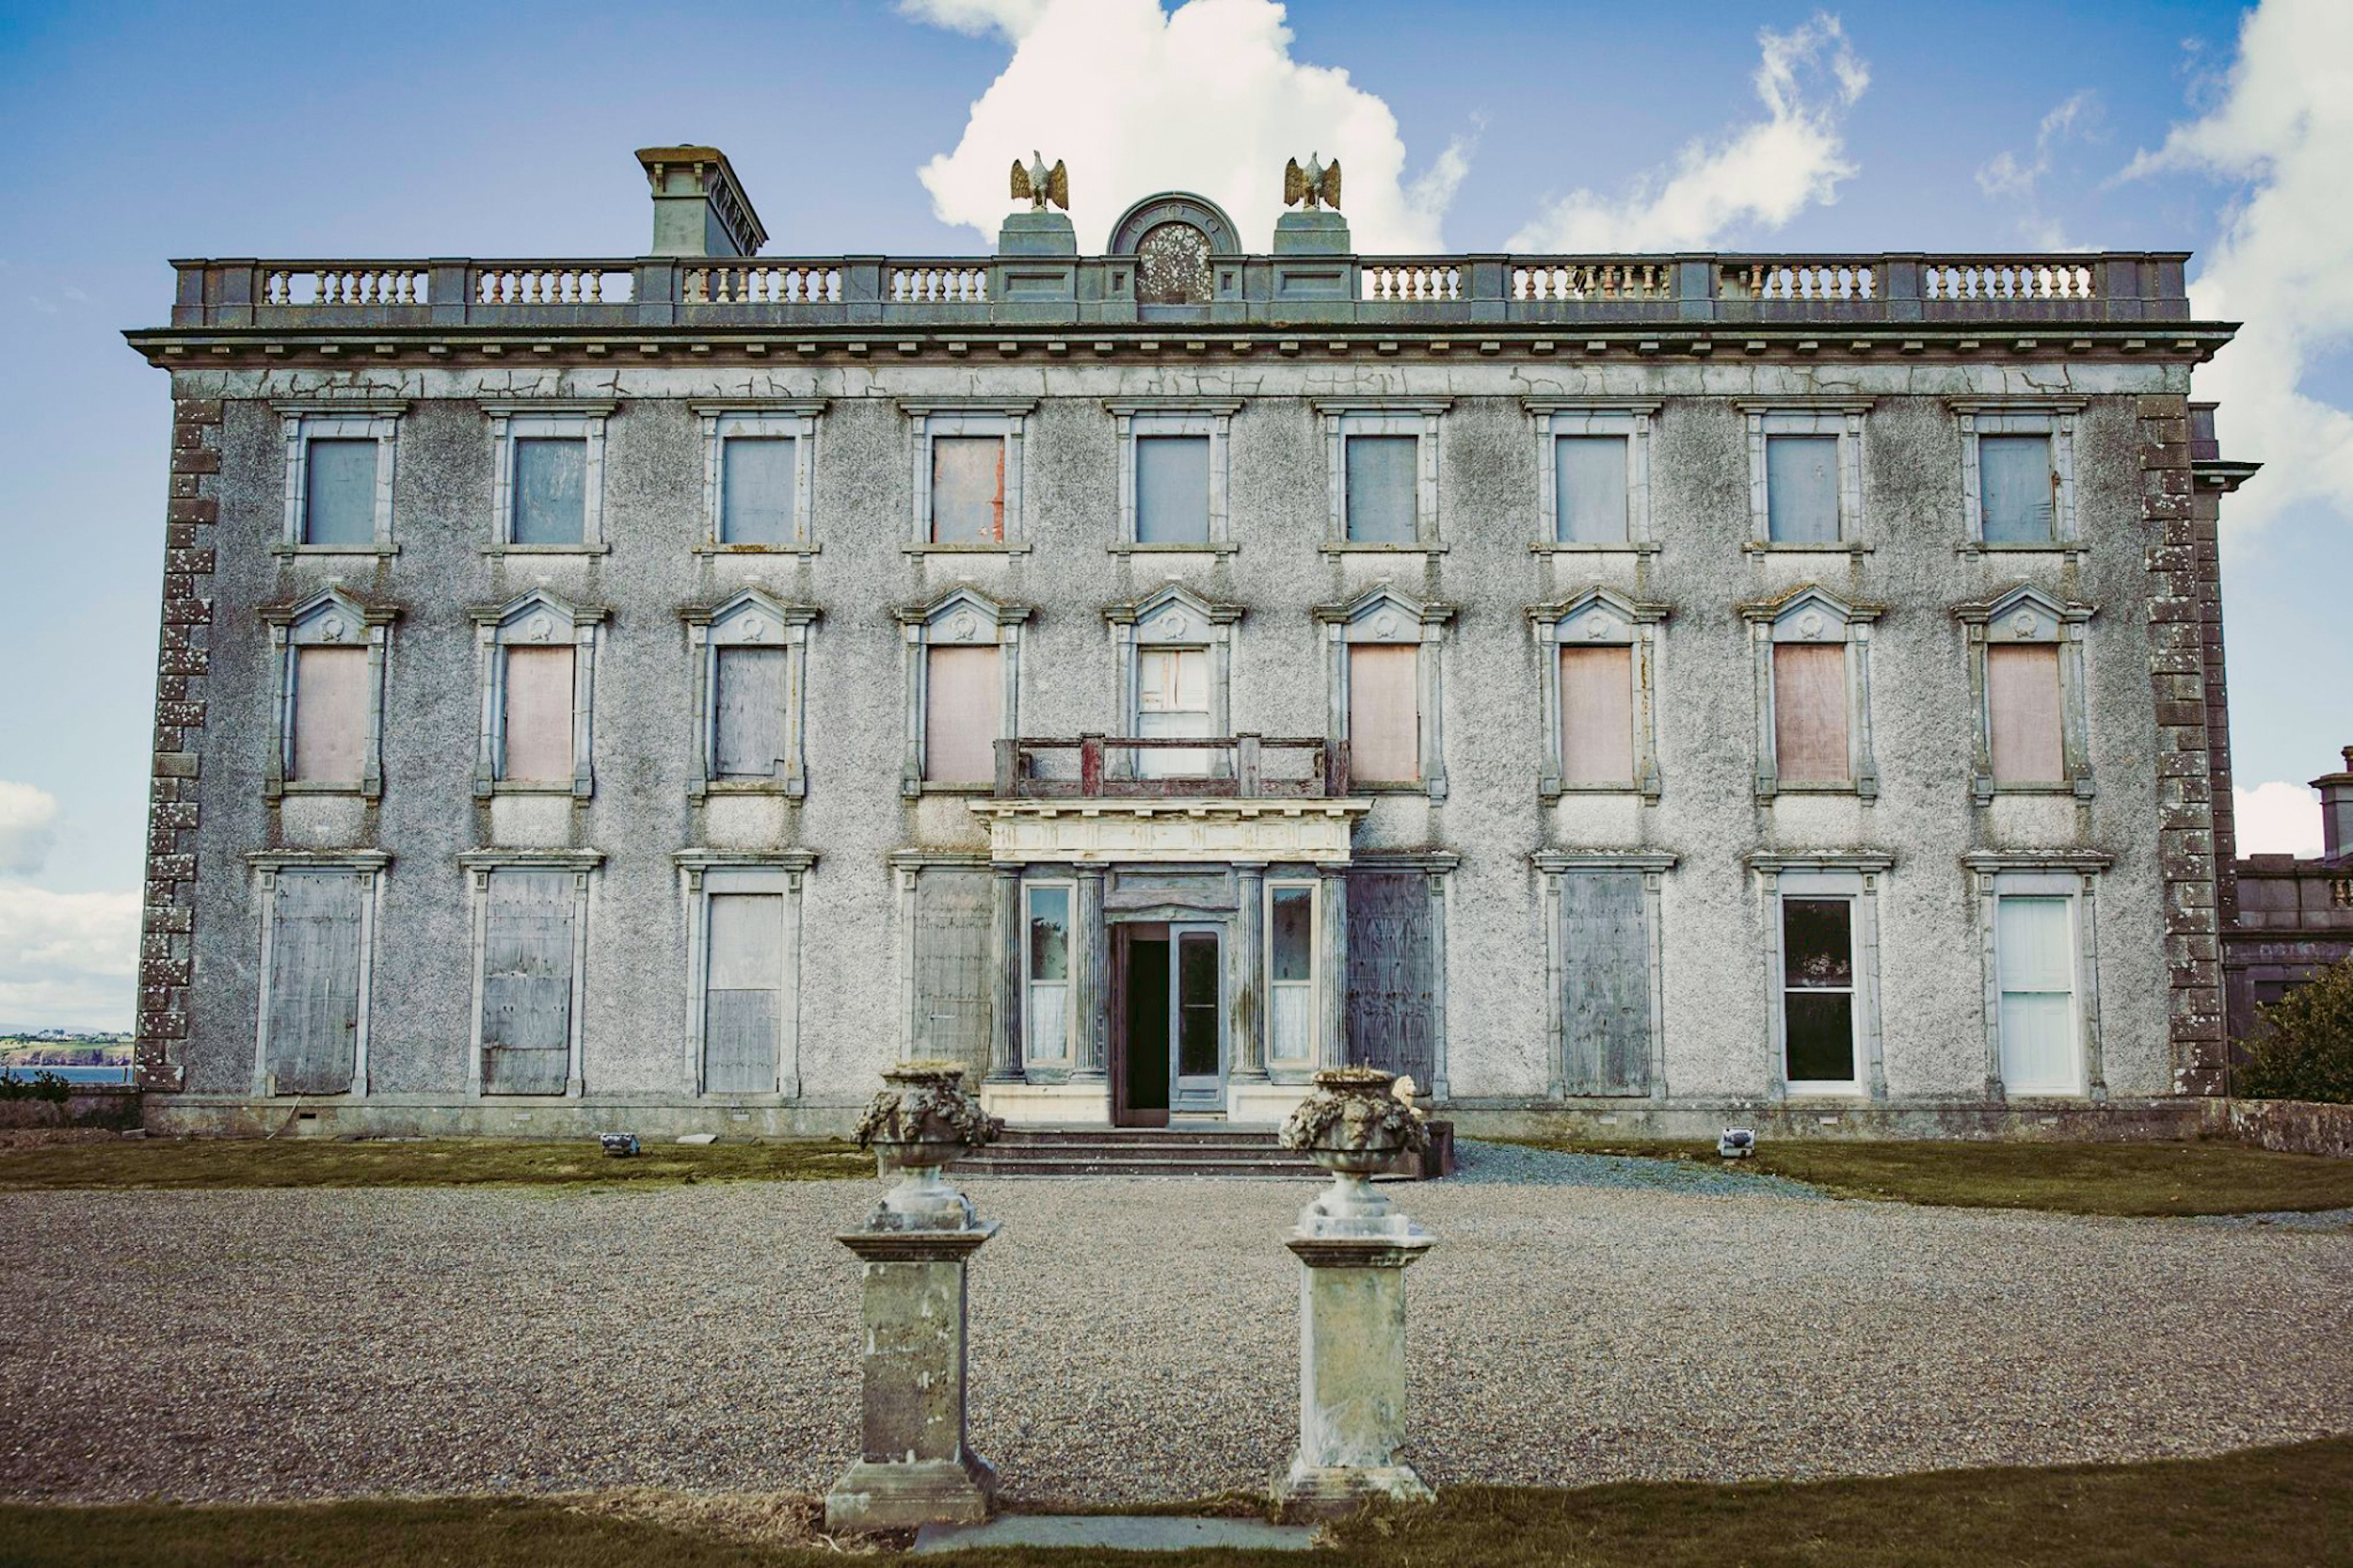 Irelands most haunted house for sale